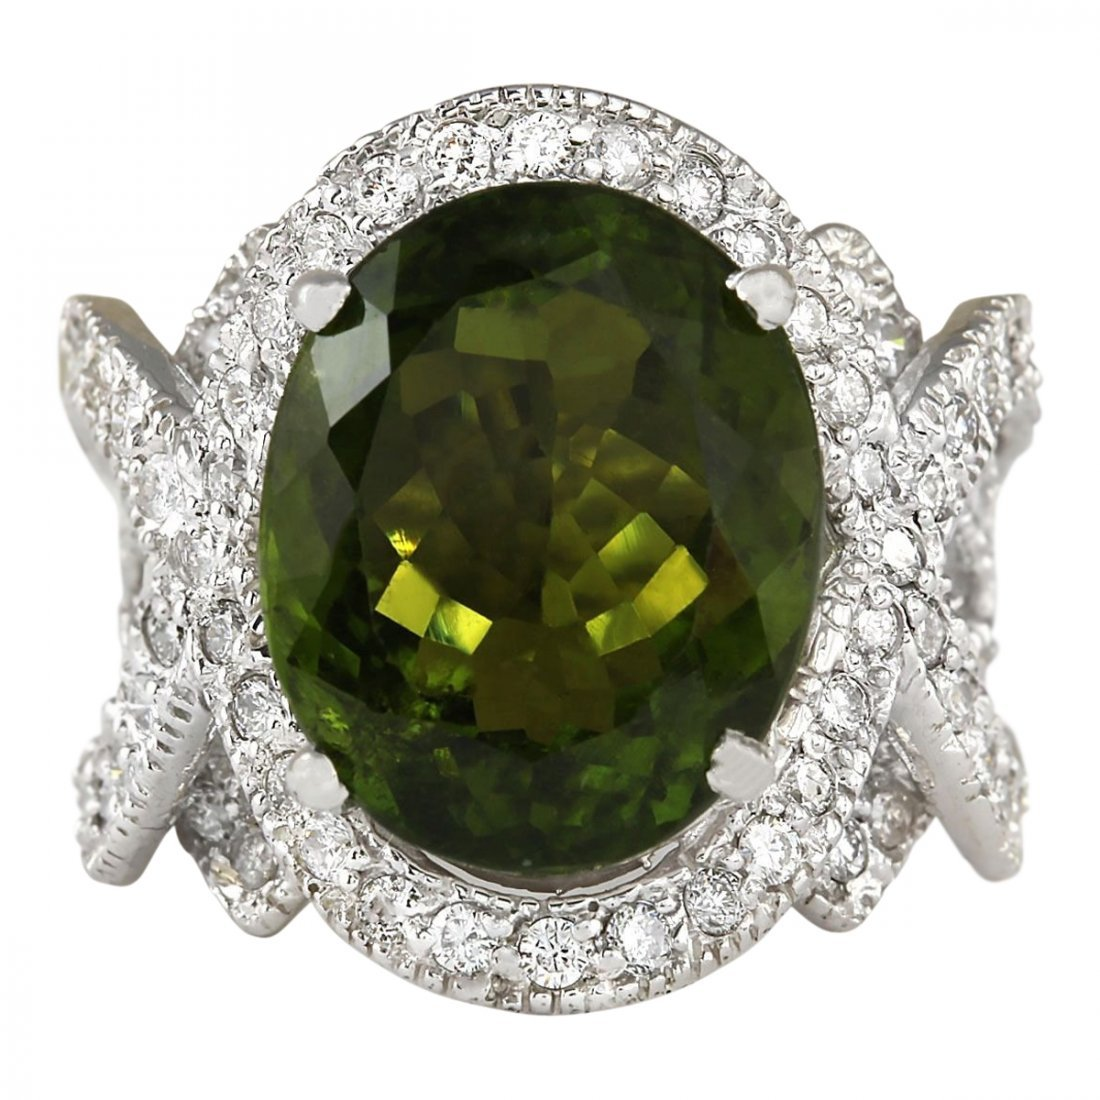 12.80 CTW Natural Green Tourmaline And Diamond Ring 14k